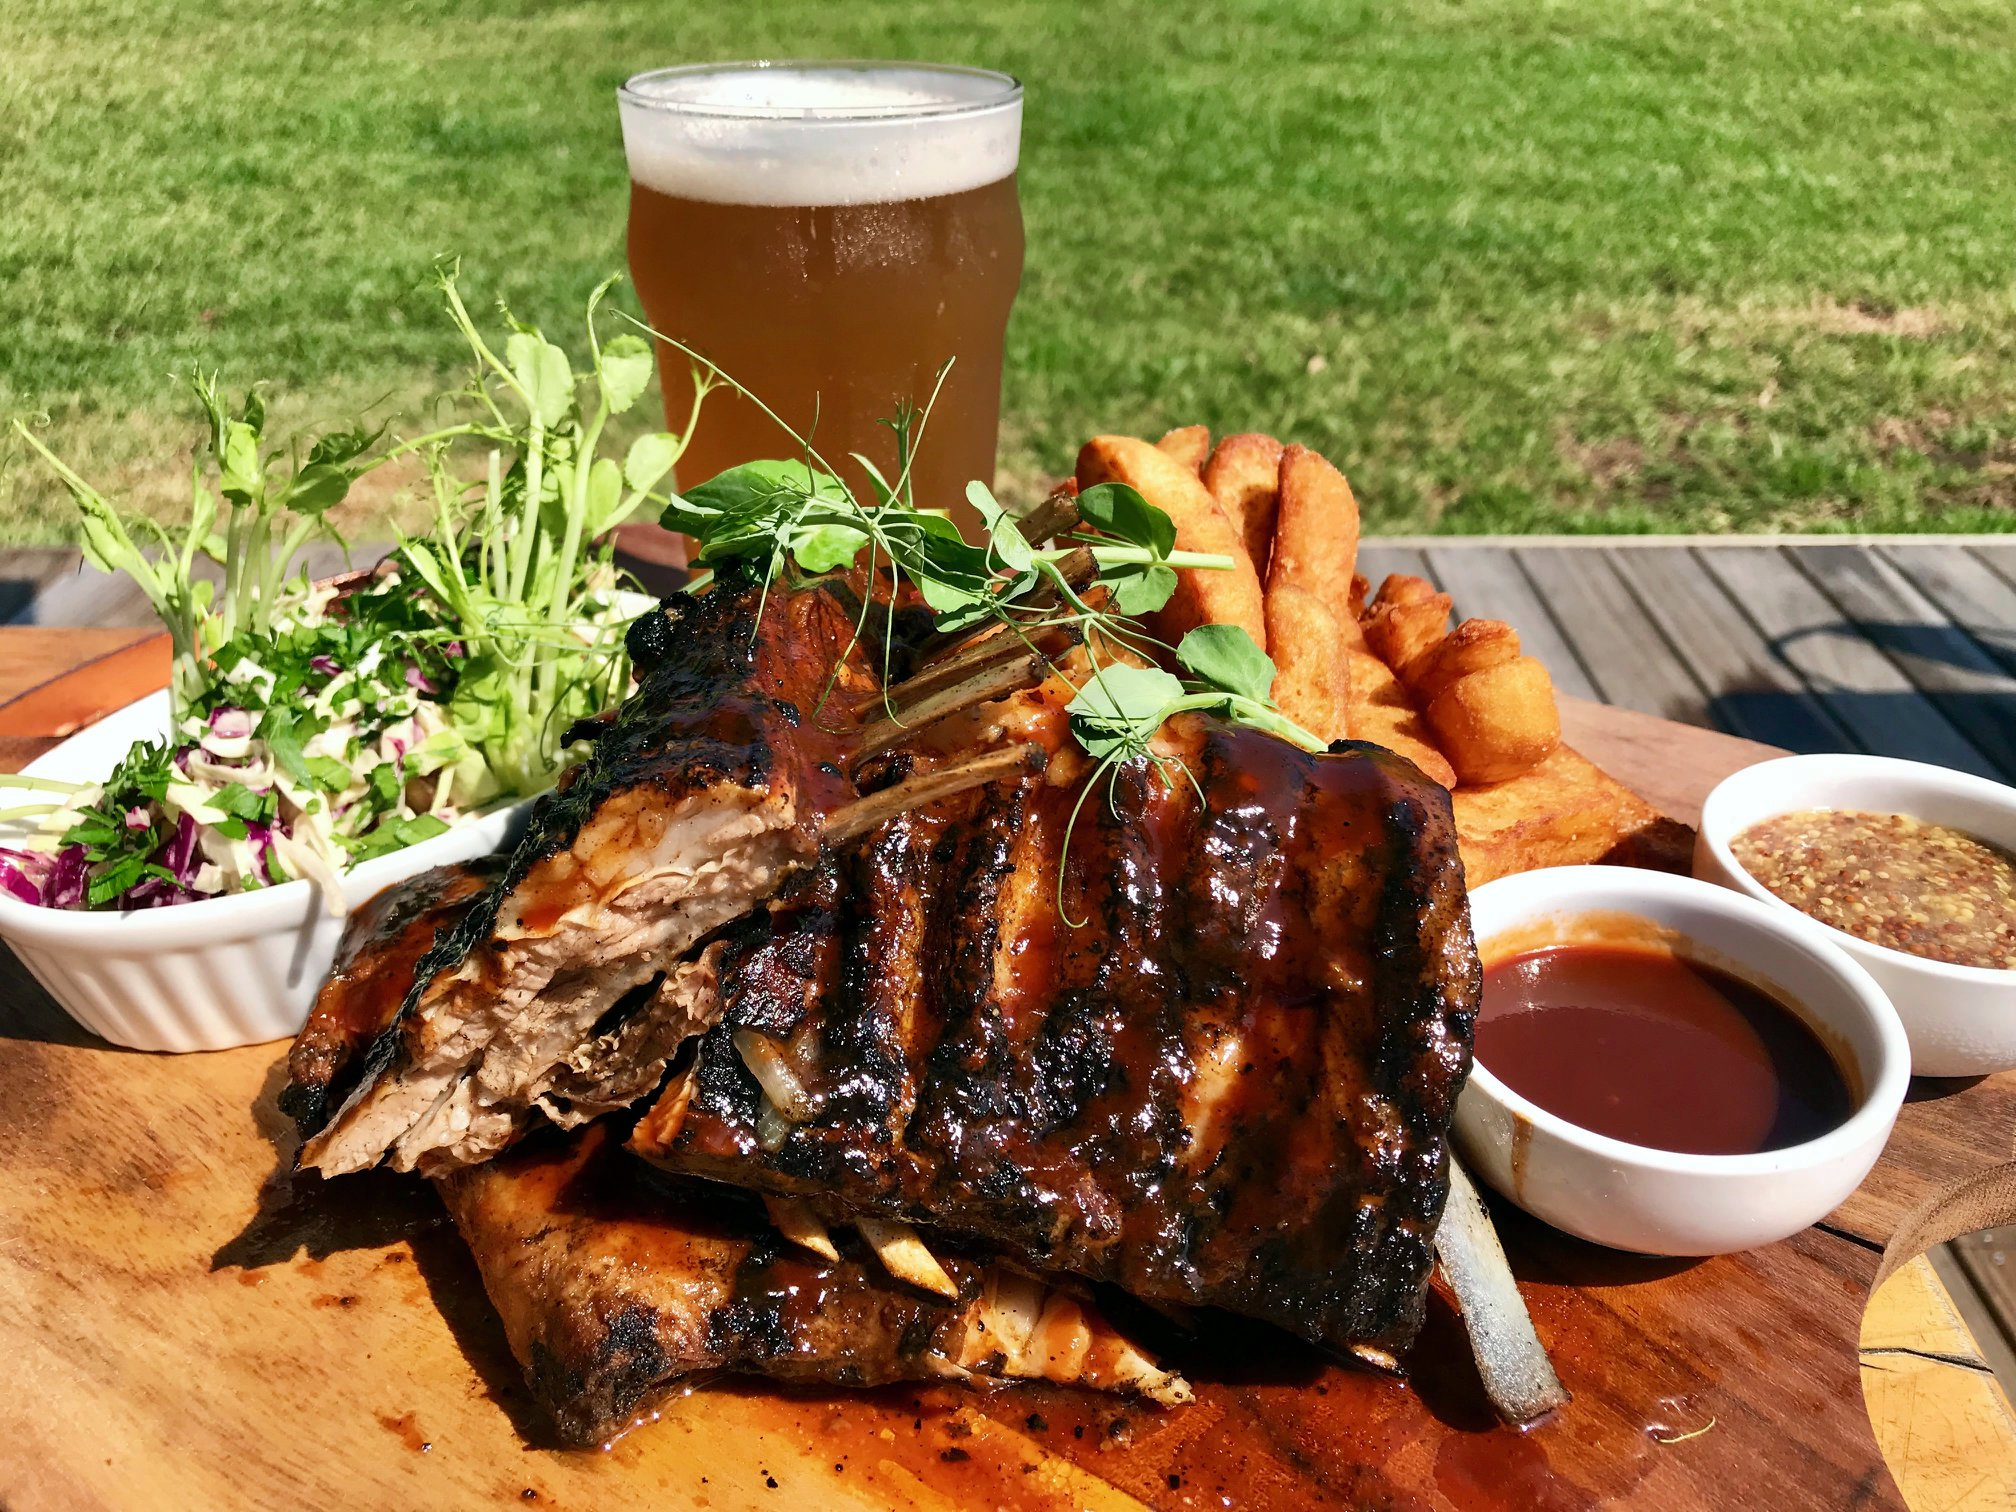 Travis Road Trips from Sydney Guide - Ribs and beer served by Murray's Brewing